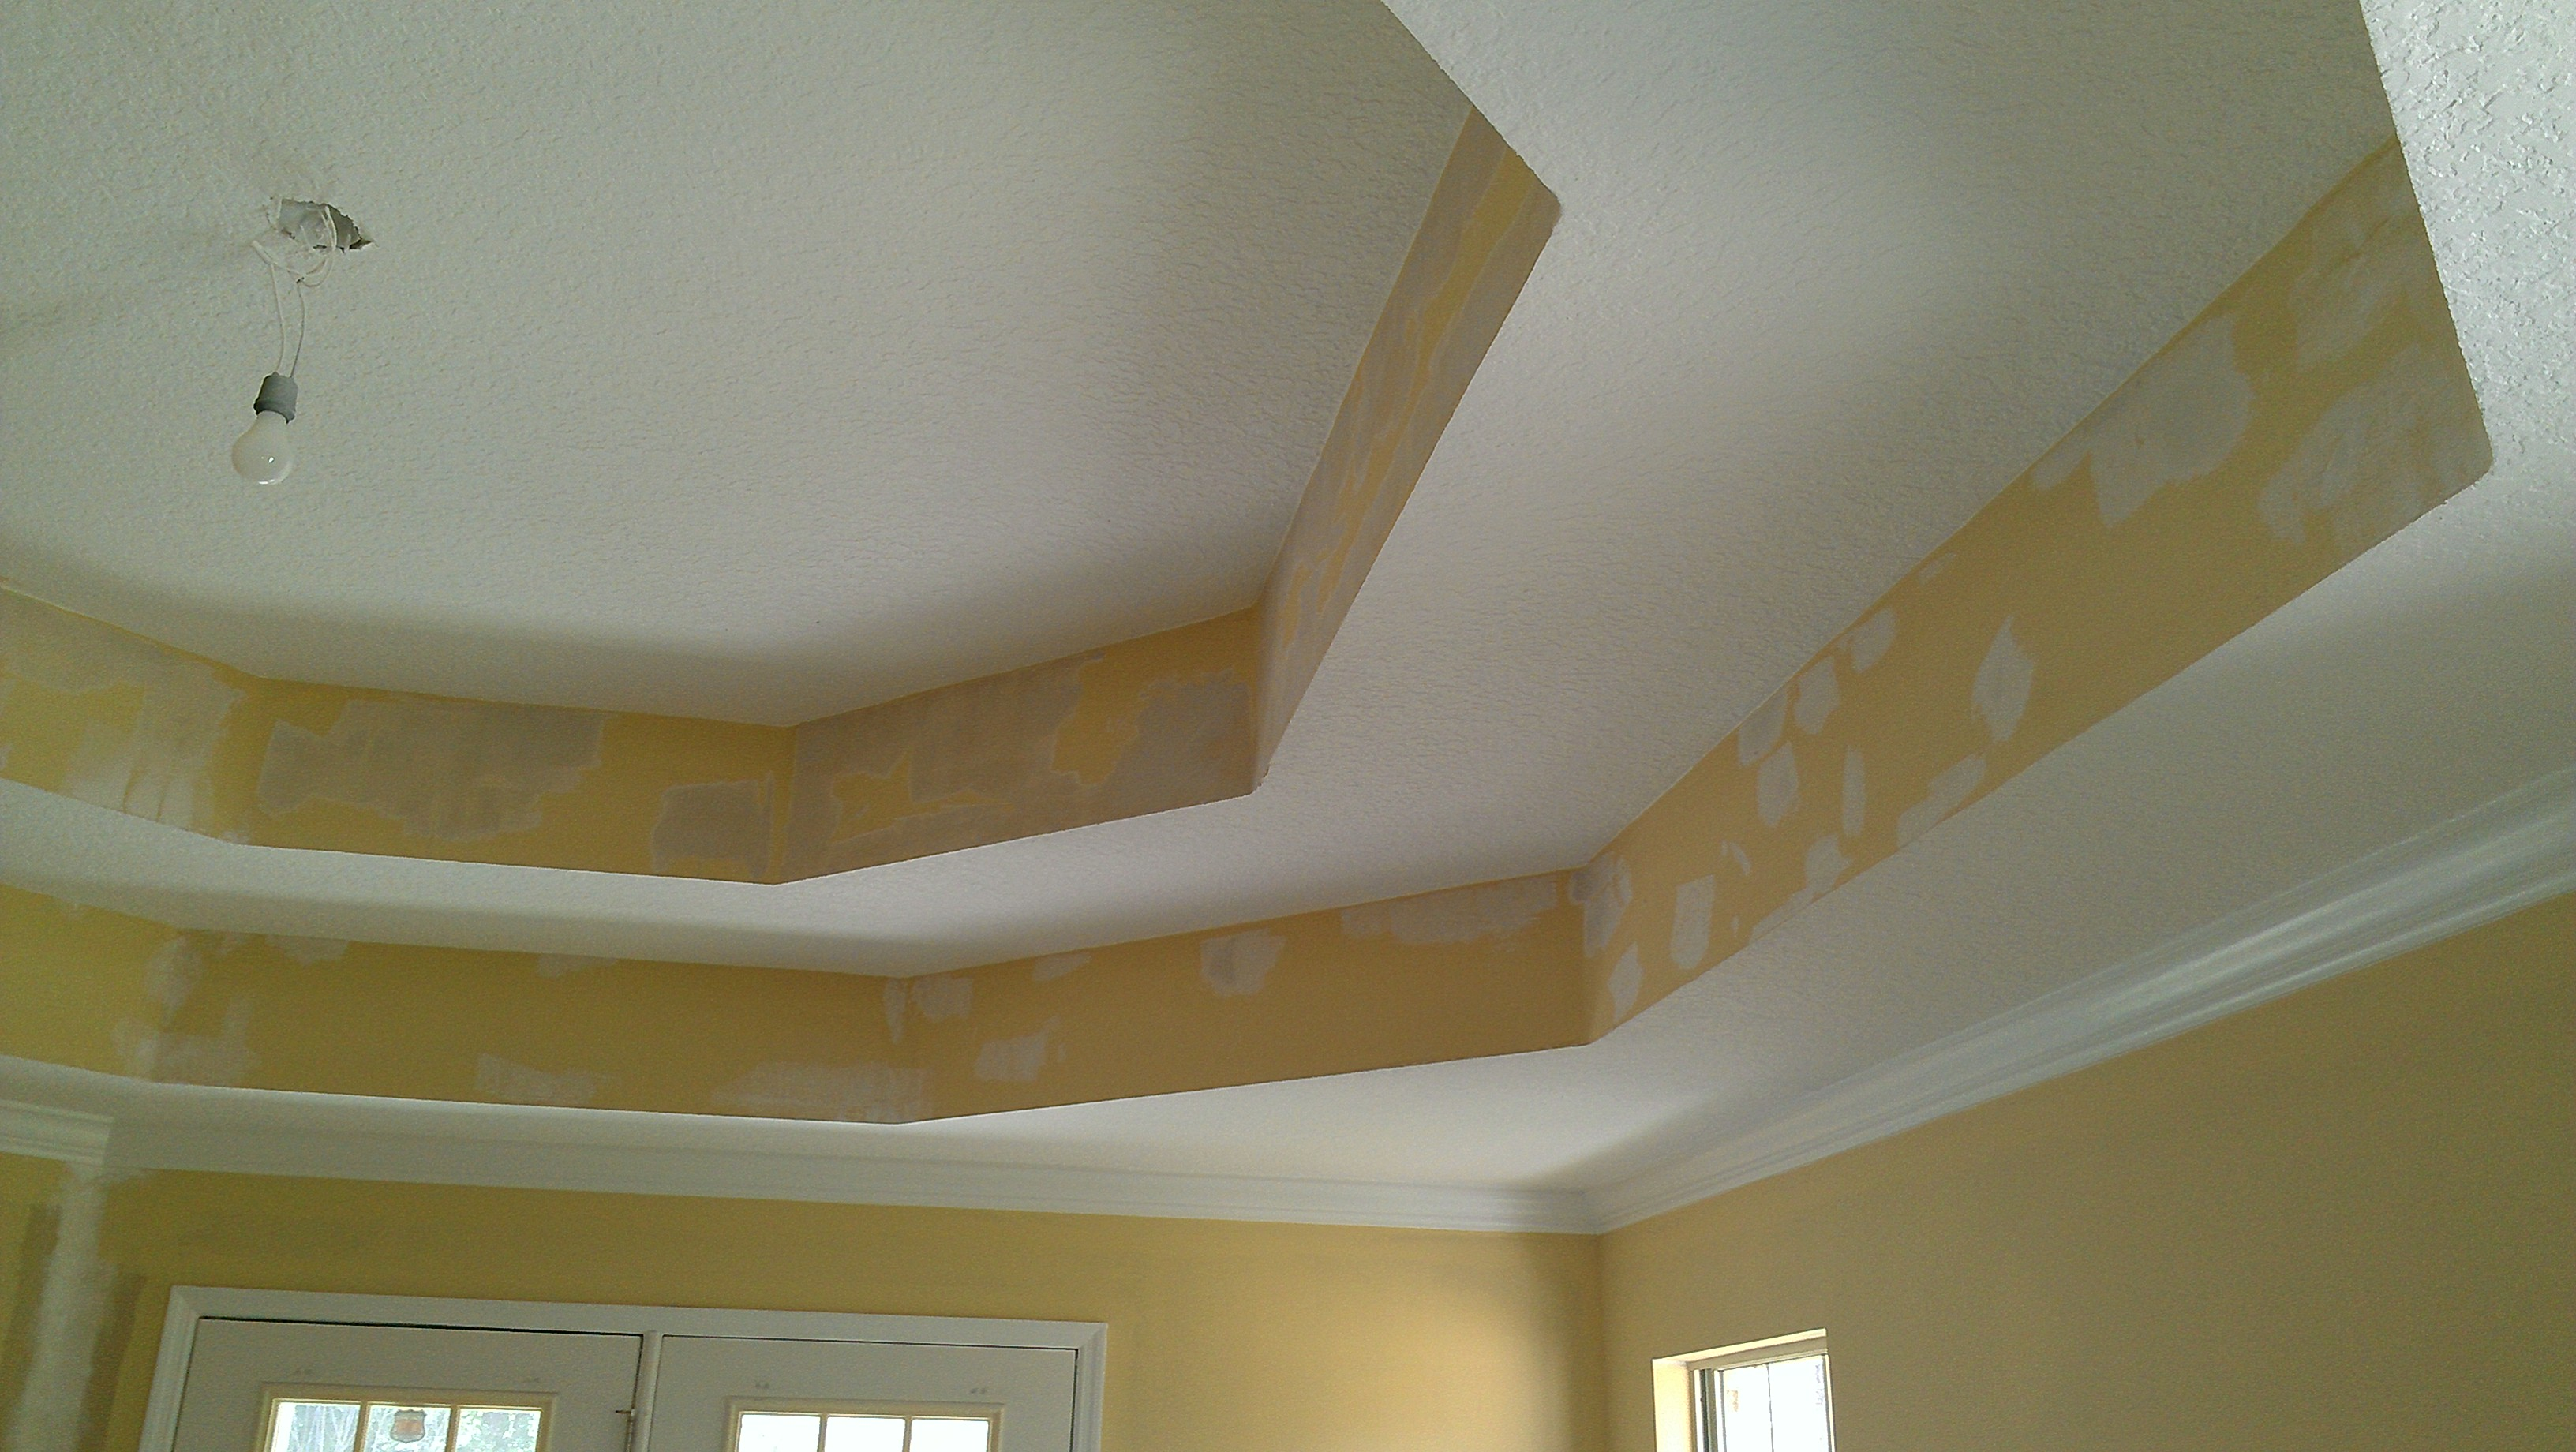 Ceiling contractor in Jacksonville, Drywall and Popcorn